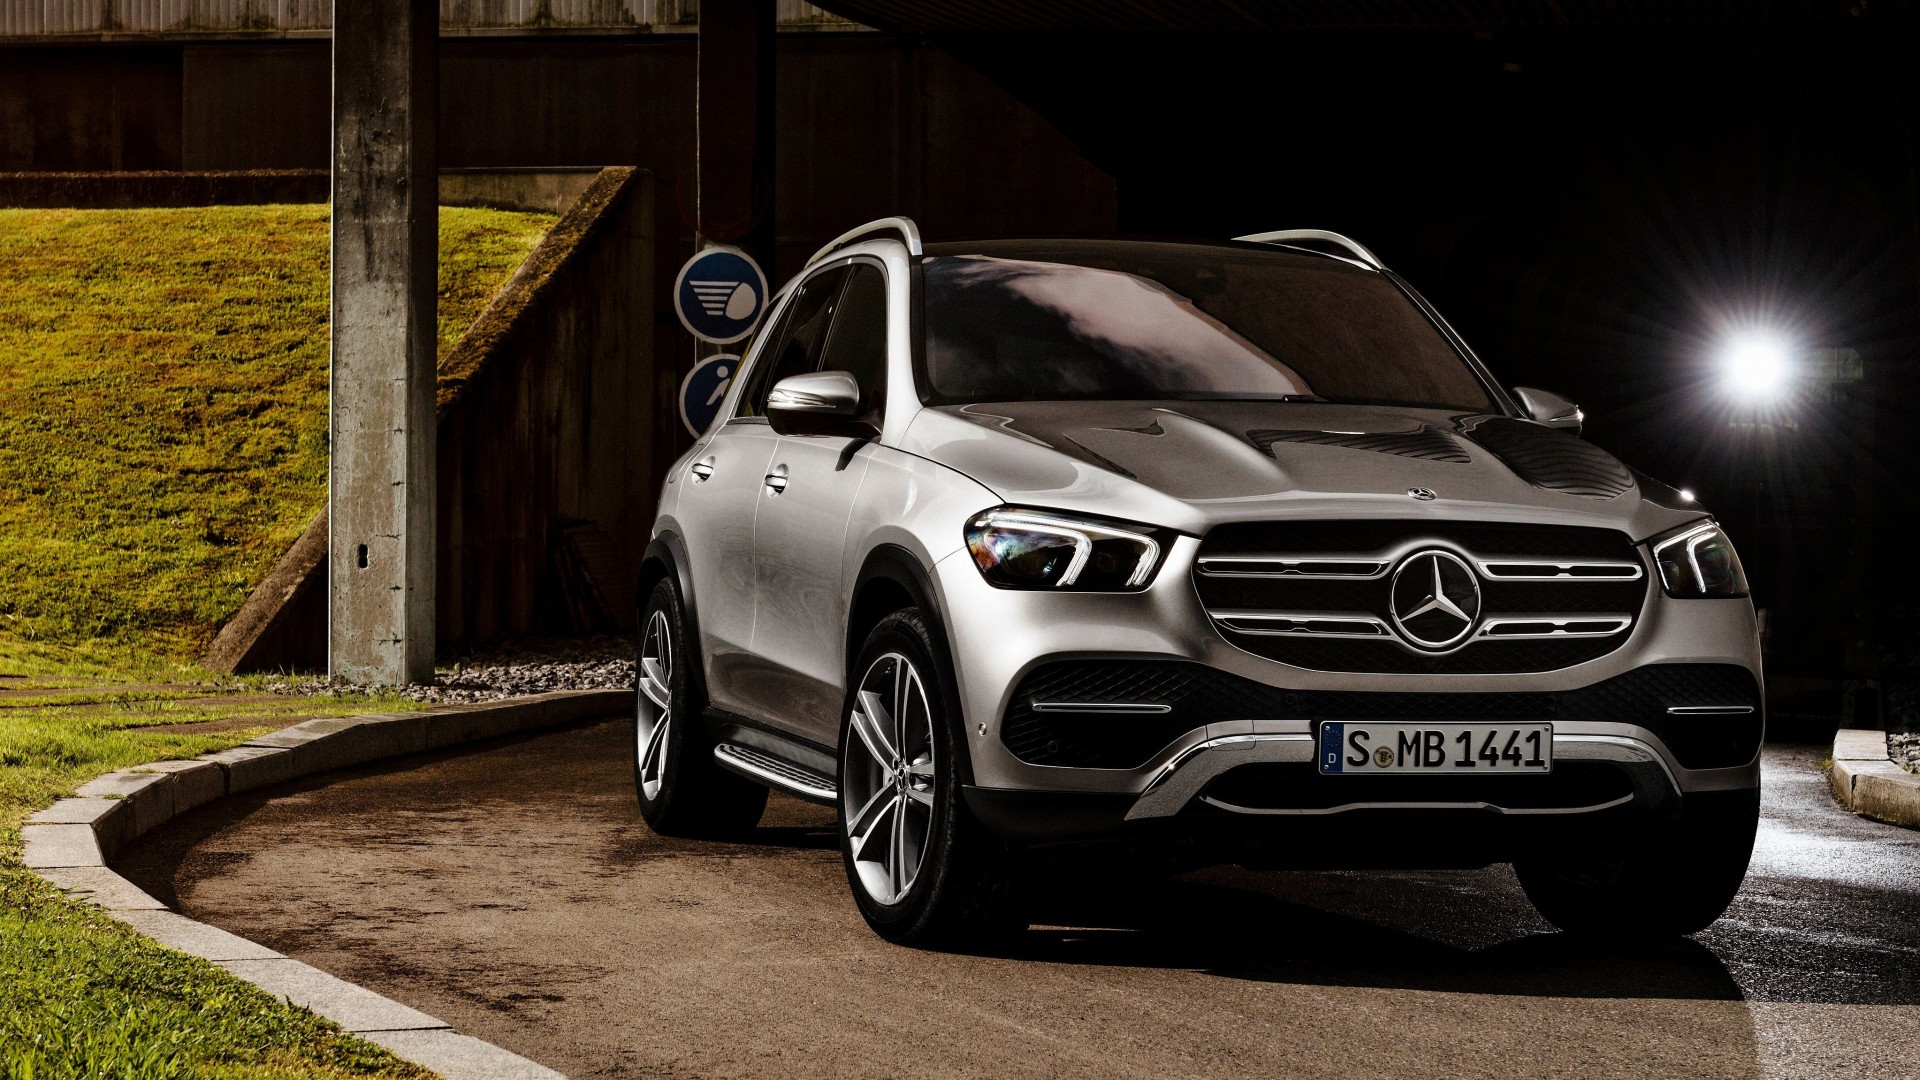 2019_WallpaperMercedes-BenzGLE,2019Cars,SUV,4K,CarsBikes#20368